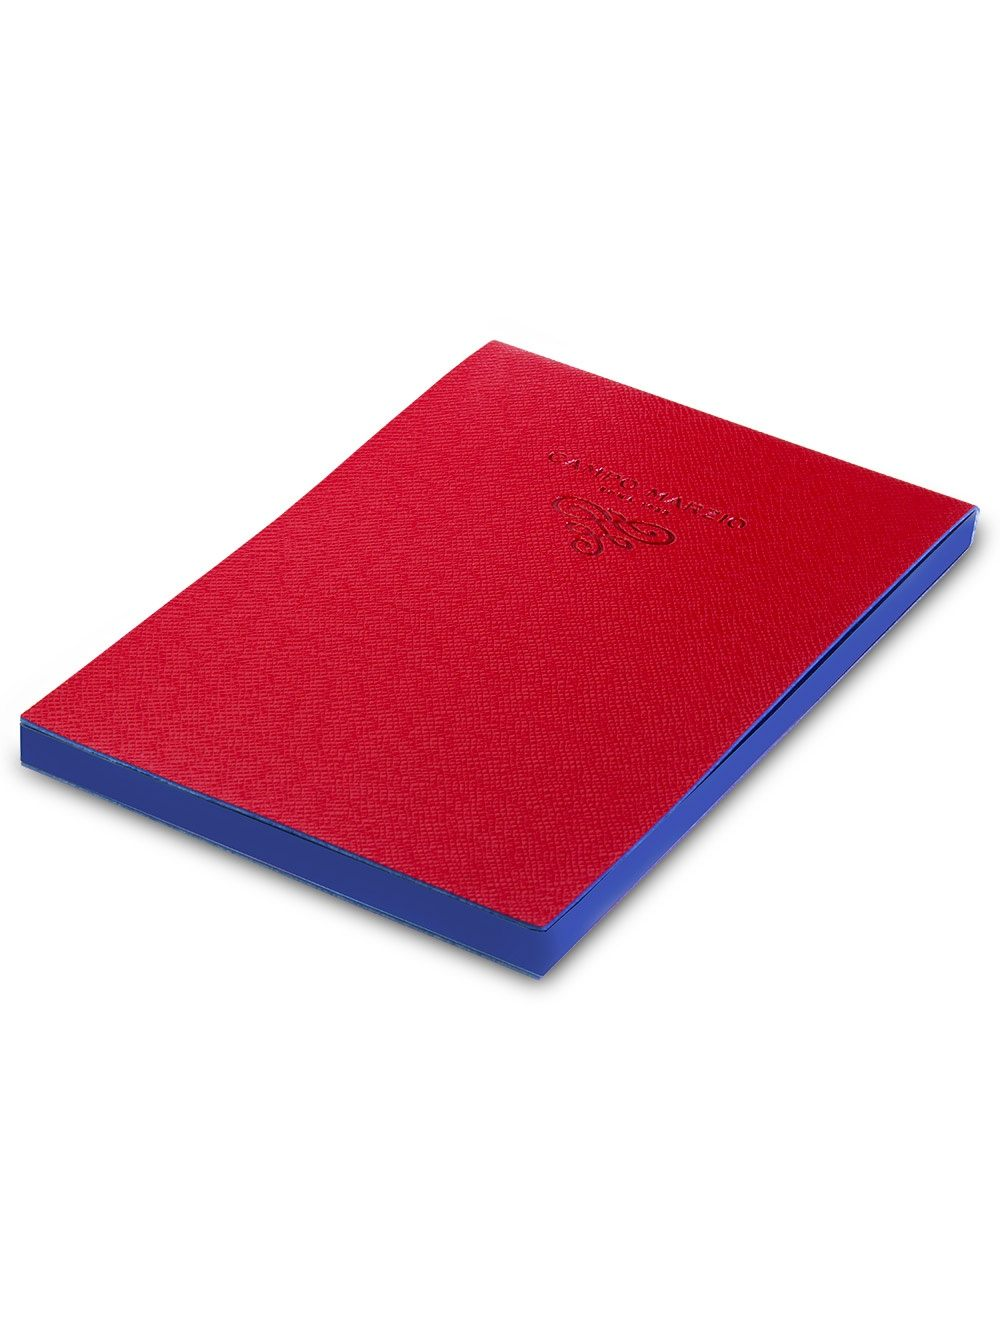 Notes 21 X 29,5 Cm Saffiano - Cherry Red